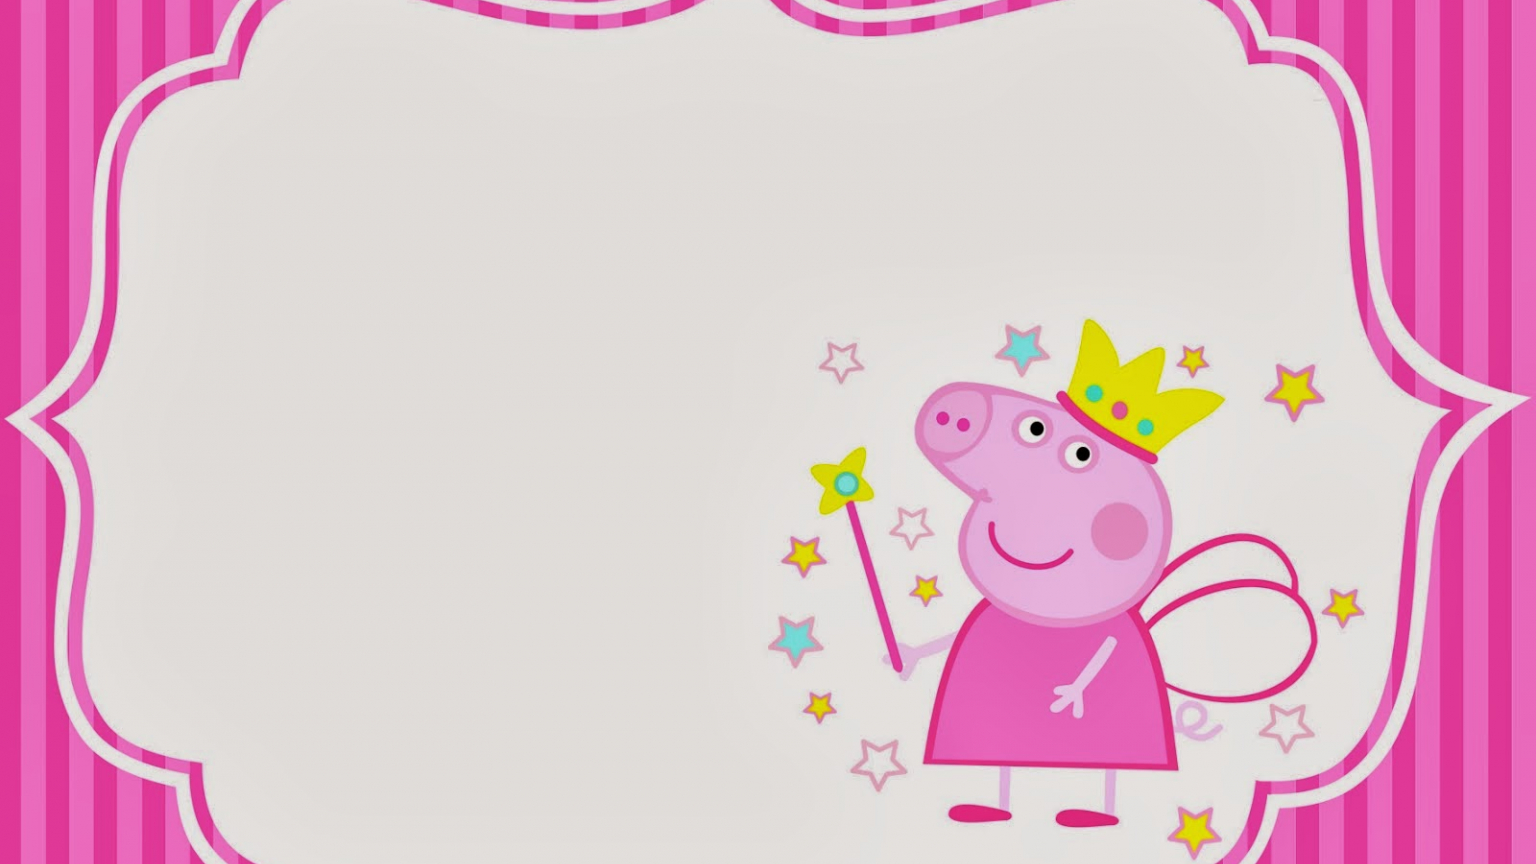 - Free Download Peppa Pig Fairy Invitations And Party Printables Oh